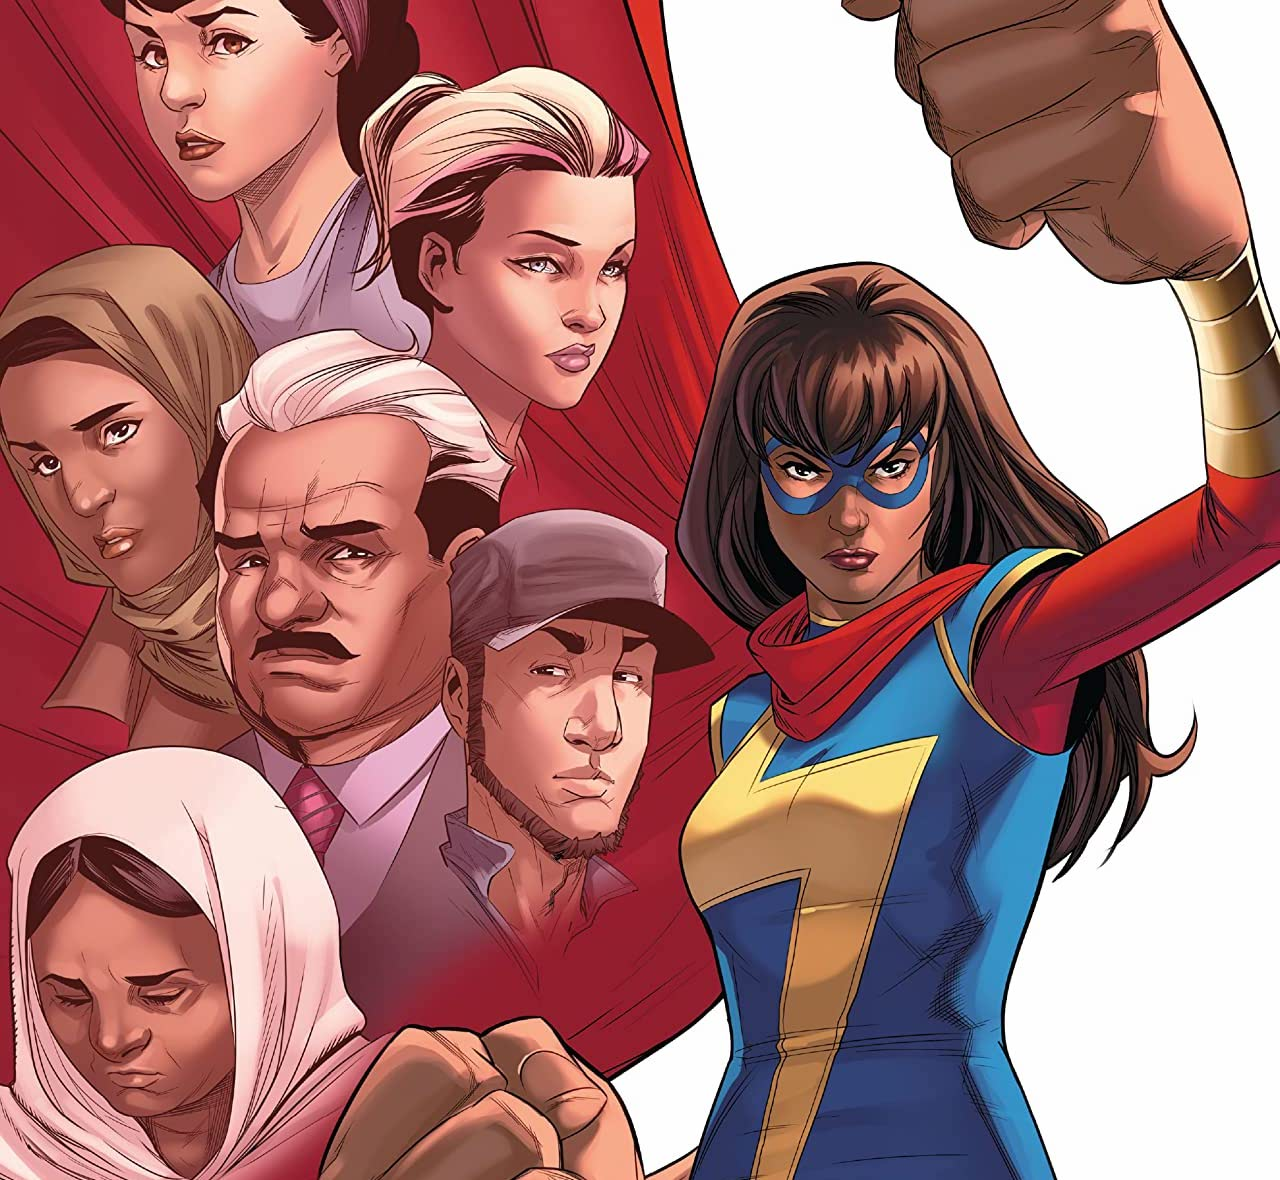 'Ms. Marvel: Game Over' will go down as a classic